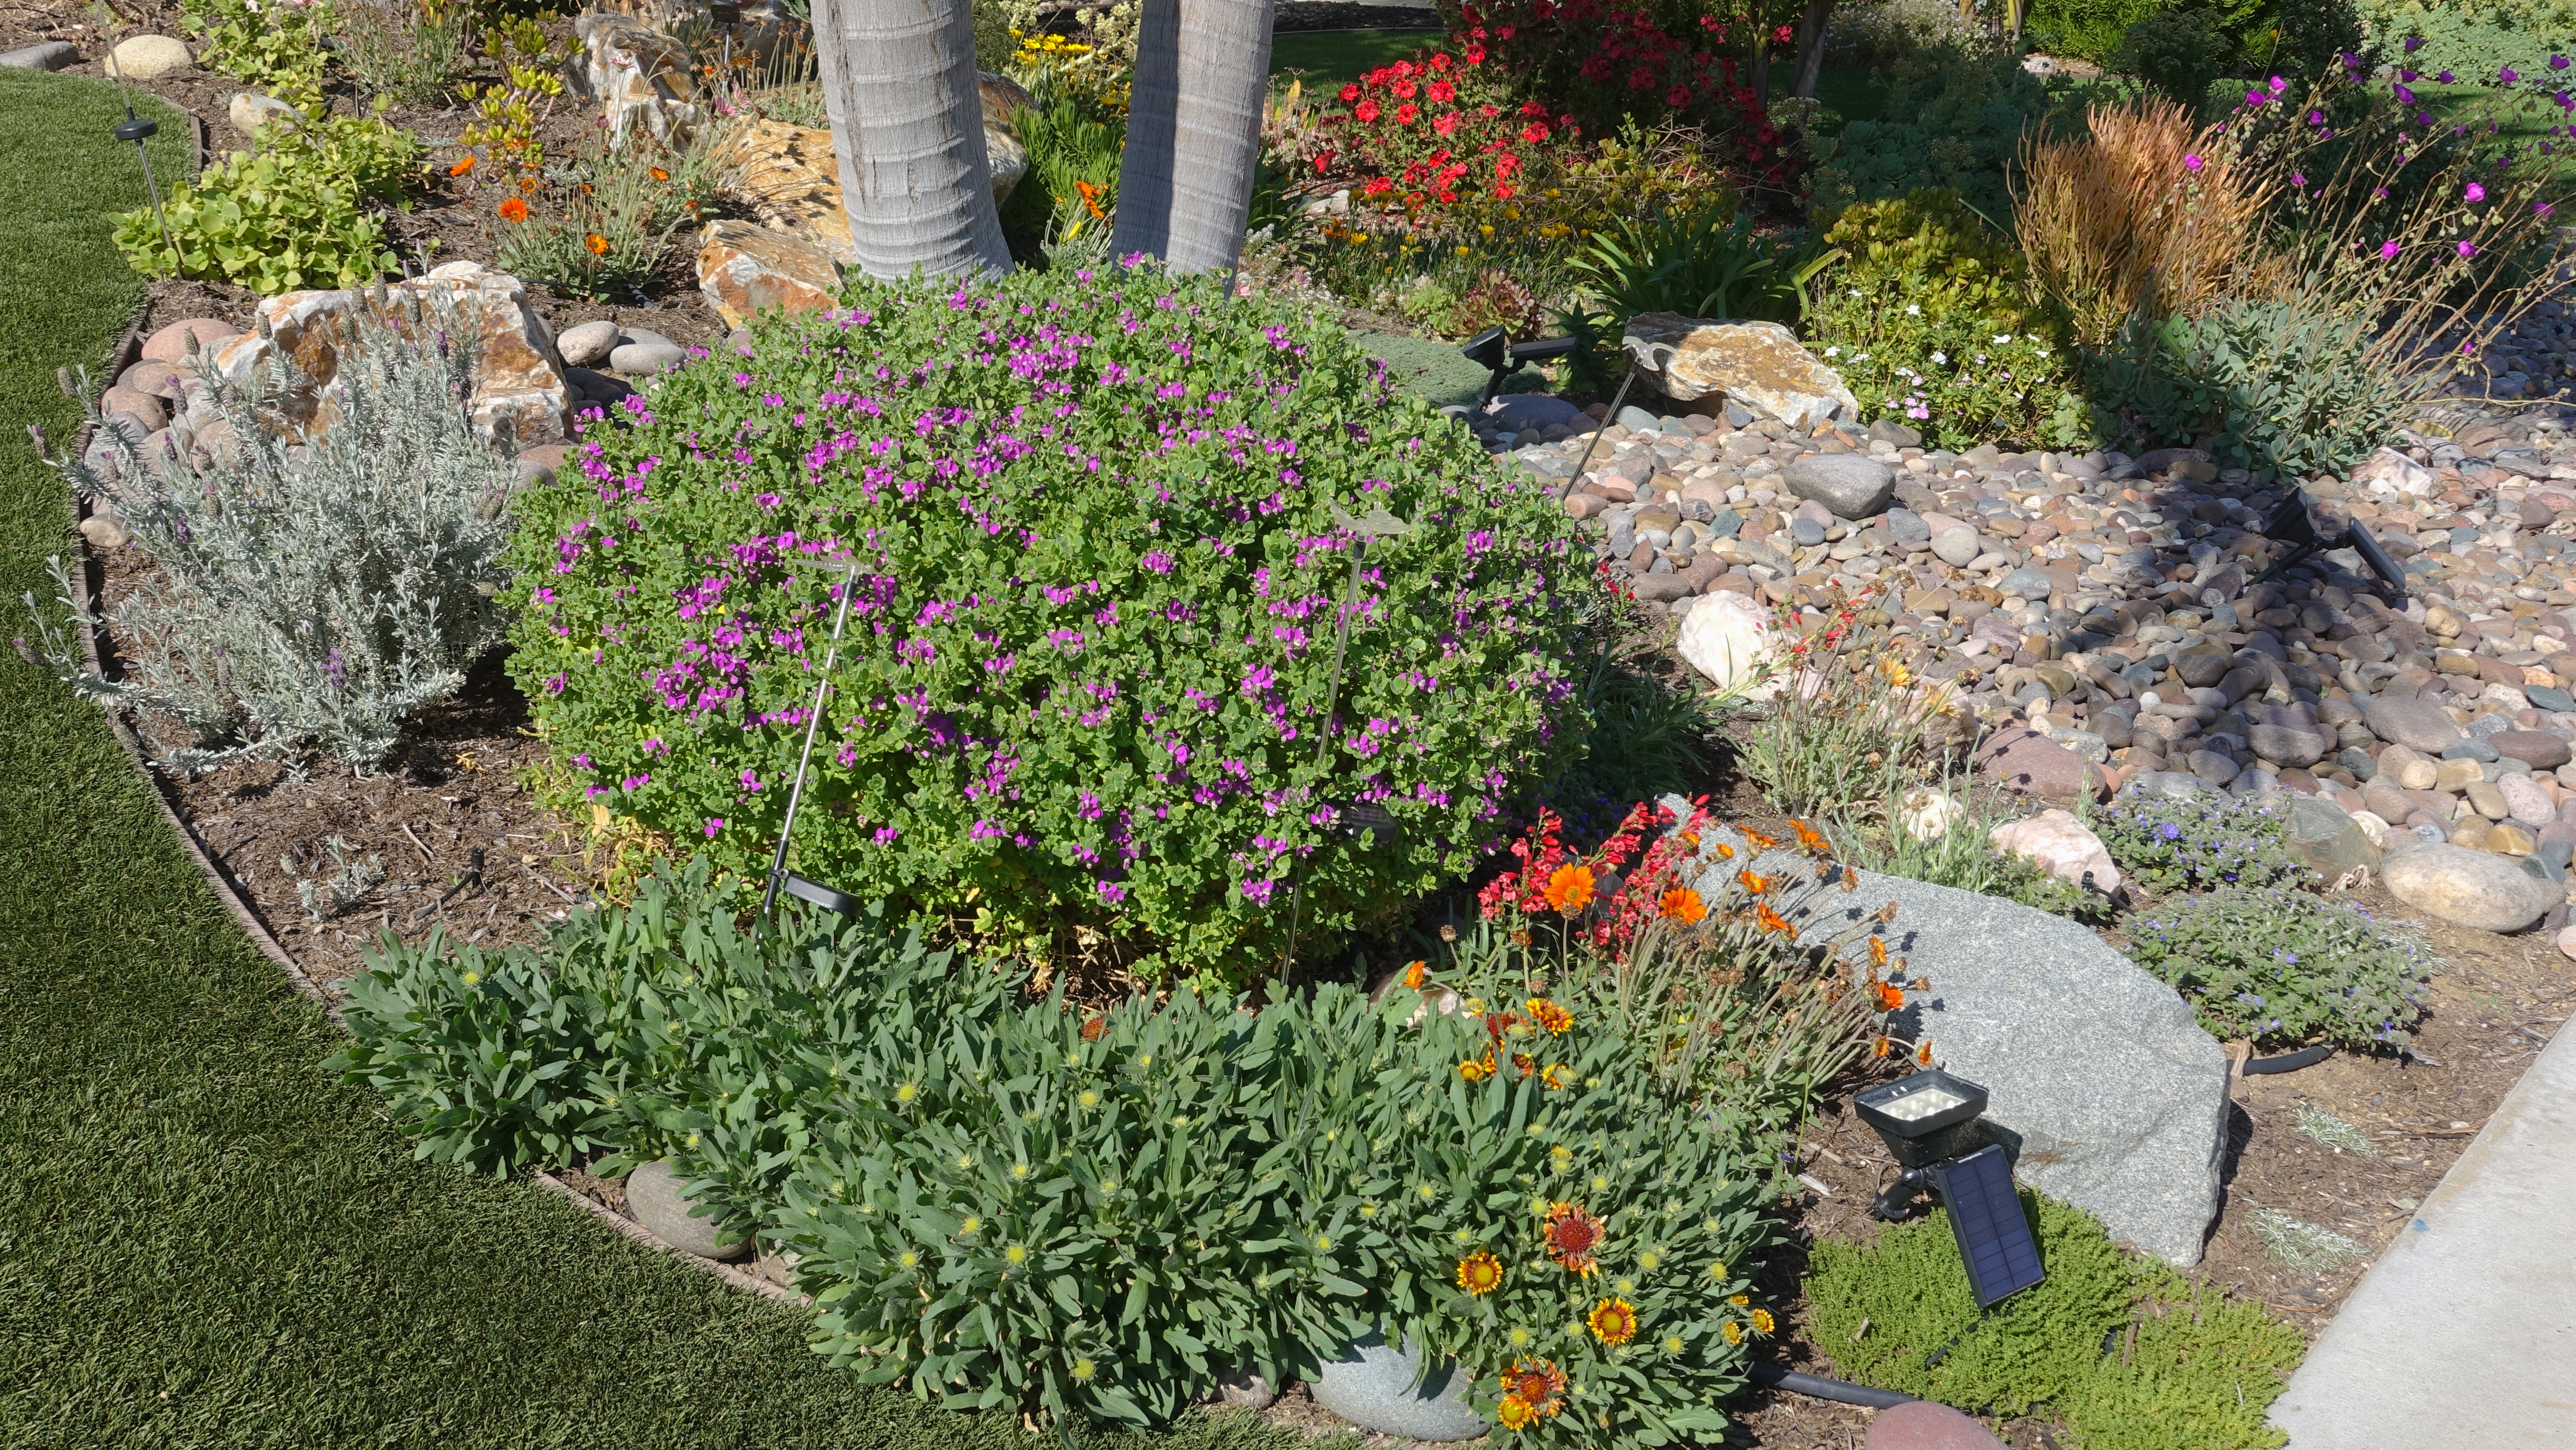 a drought resistant garden can help save energy at home